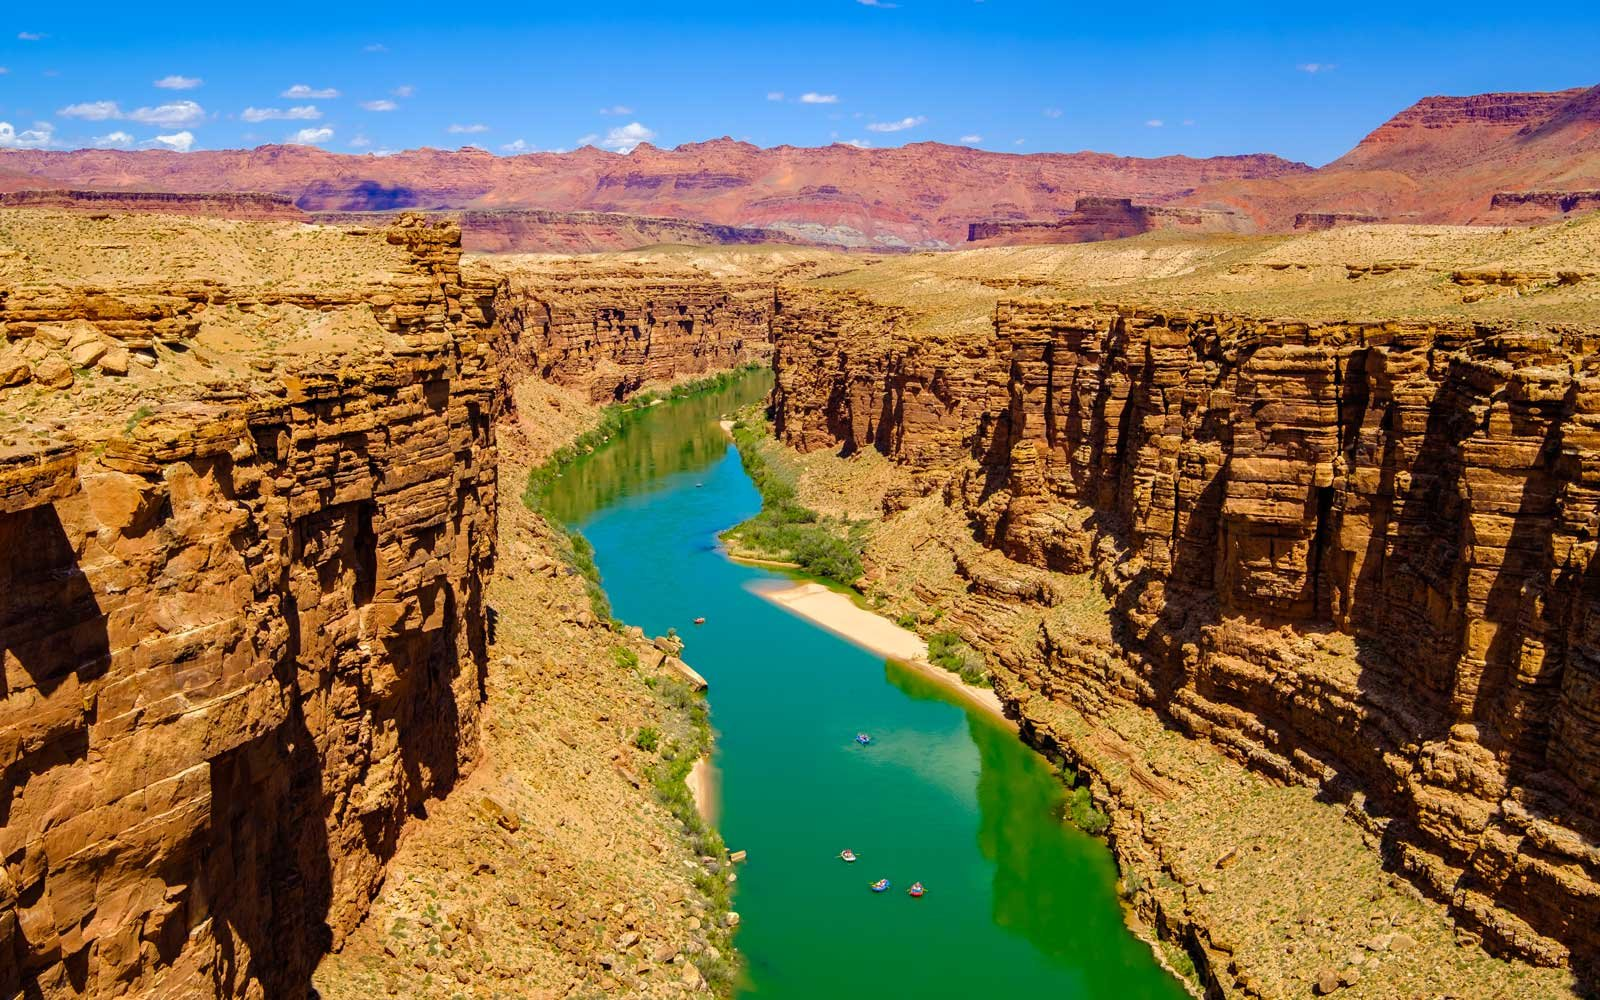 Colorado River flows through Marble Canyon in Arizona.